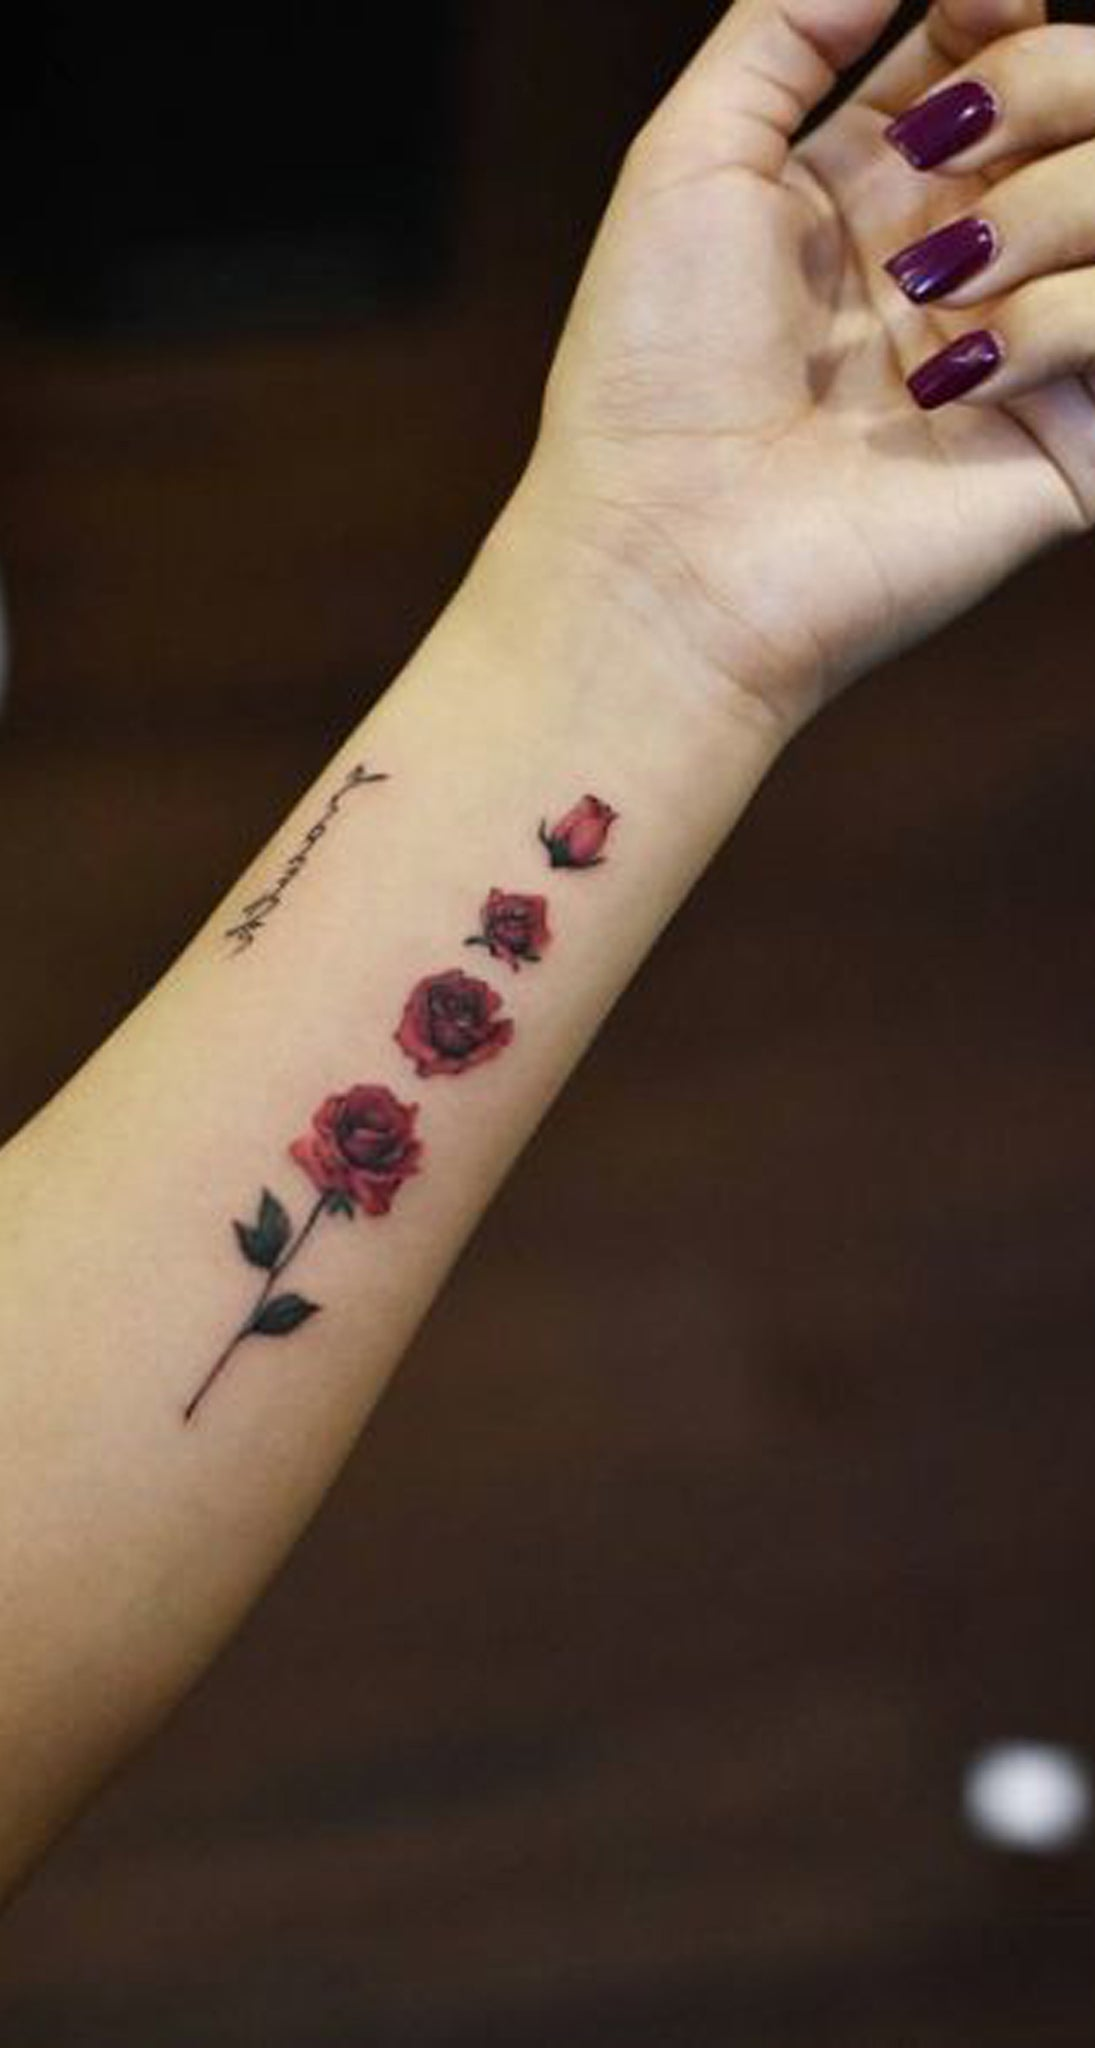 Cool Flower Tattoos: 30+ Simple And Small Flower Tattoos Ideas For Women